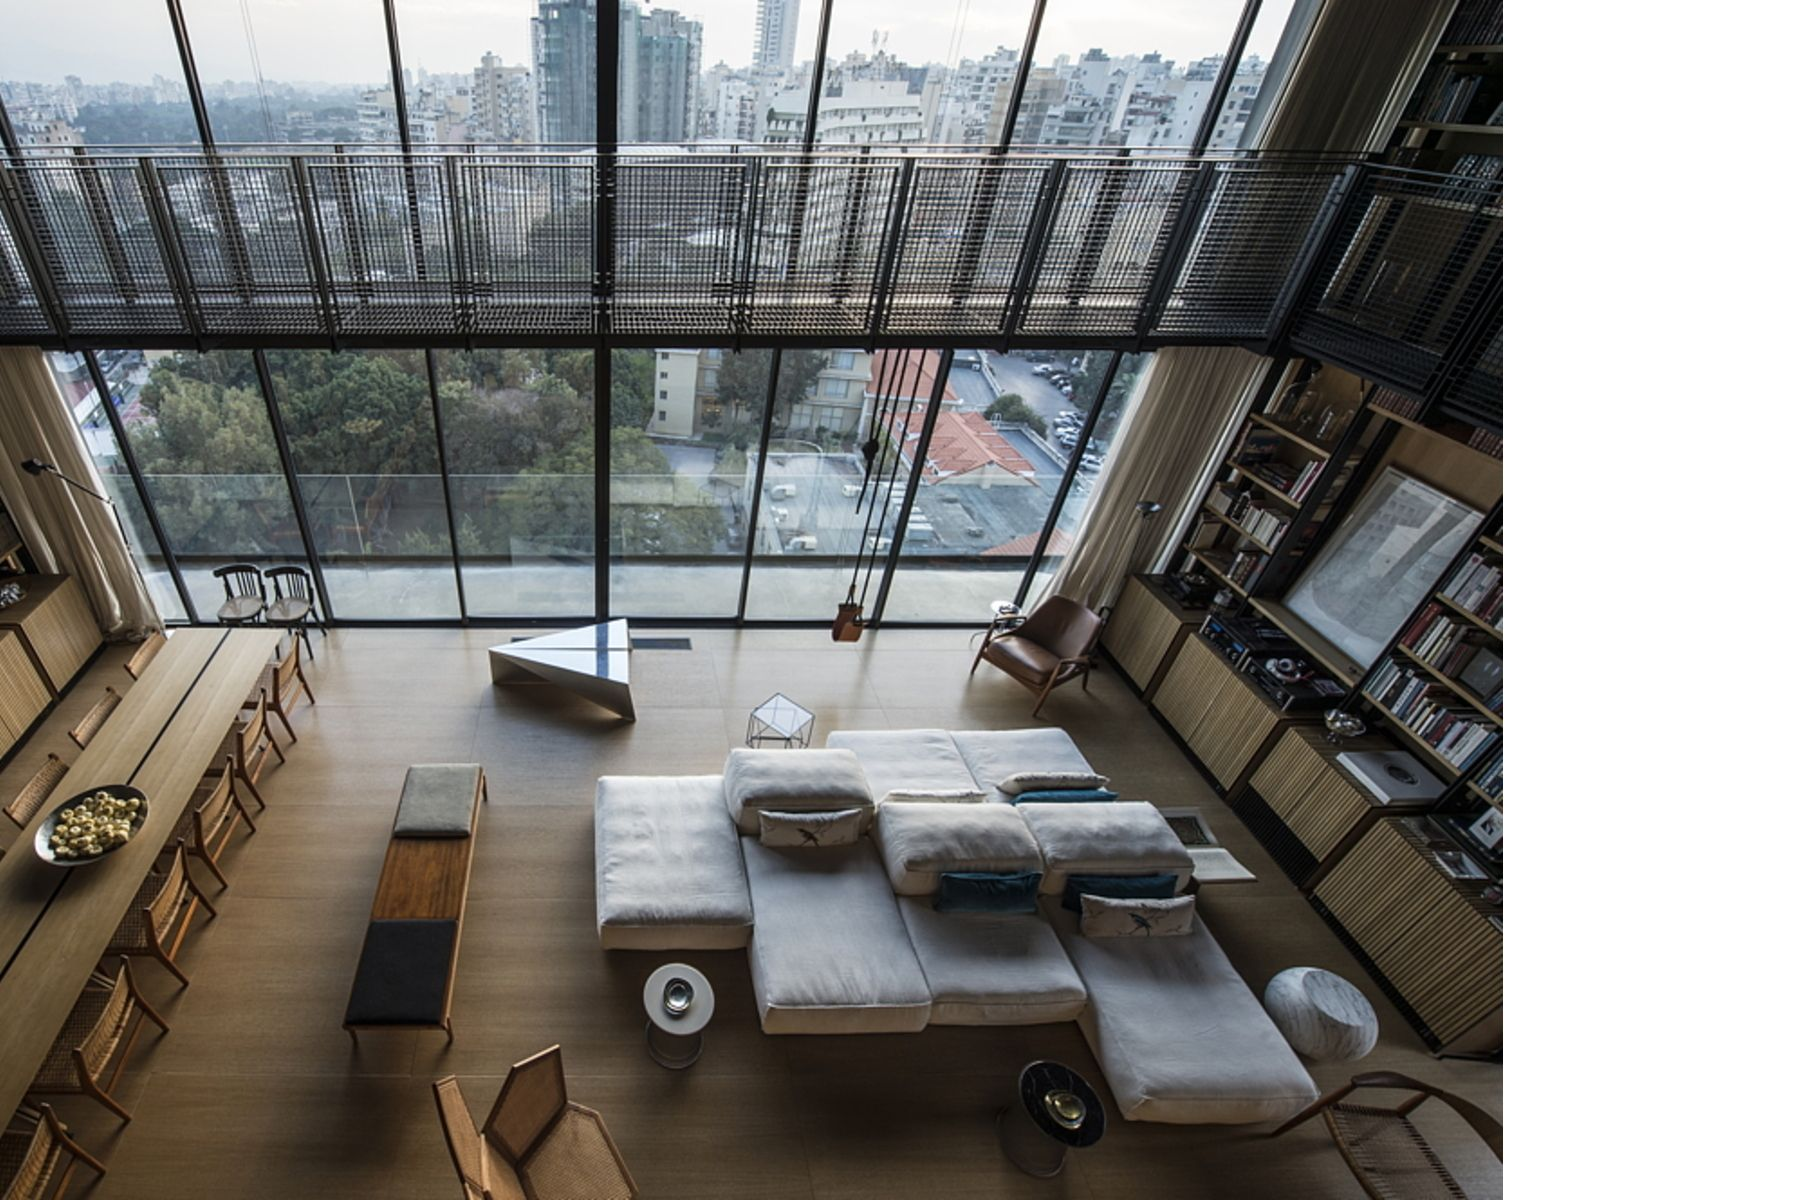 Bernard Khoury And The Enigmatic Nbk Residence 2 In Beirut